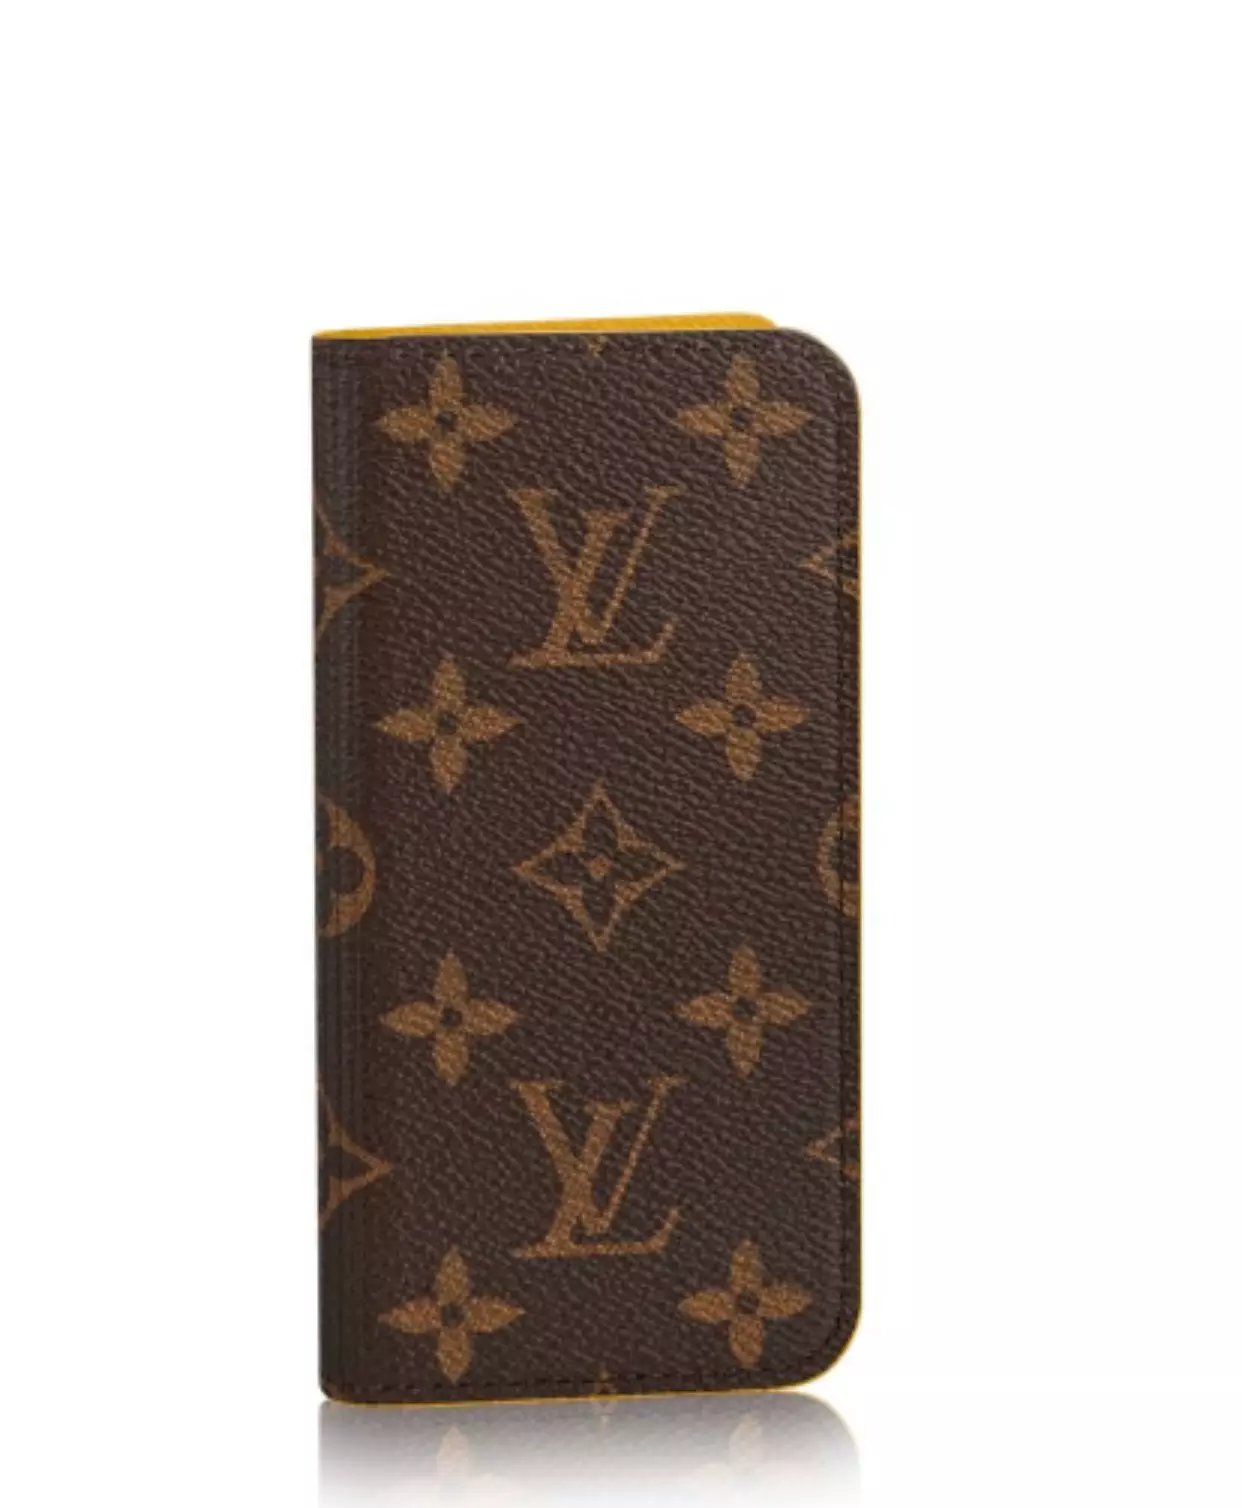 make my own iphone 8 case case 8 iphone Louis Vuitton iphone 8 case personal phone covers the phone case store covers for iphone 8 apple 8 phone cover what is the best iphone 8 case customise your own iphone case